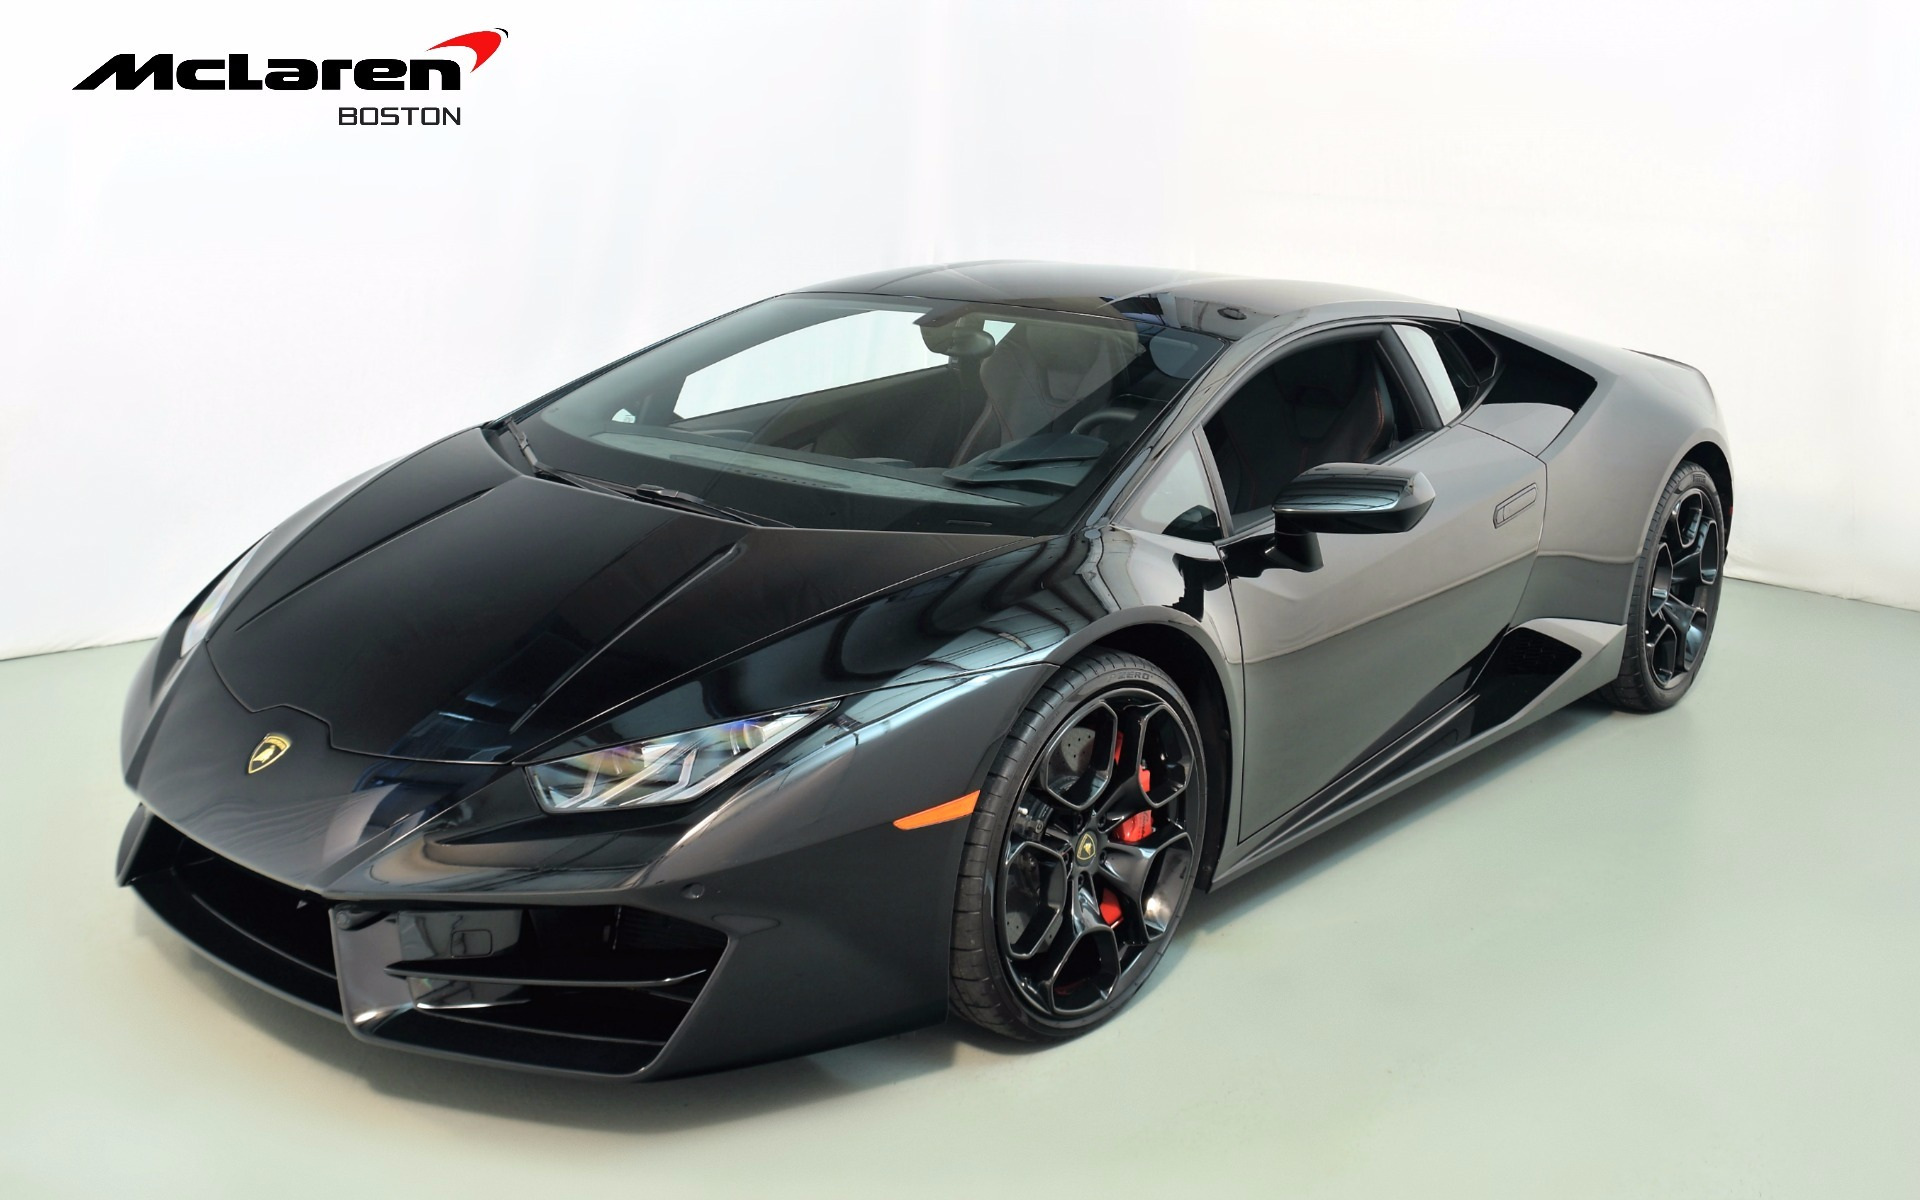 2016 lamborghini huracan lp 580 2 for sale in norwell ma a04375 mclaren boston. Black Bedroom Furniture Sets. Home Design Ideas